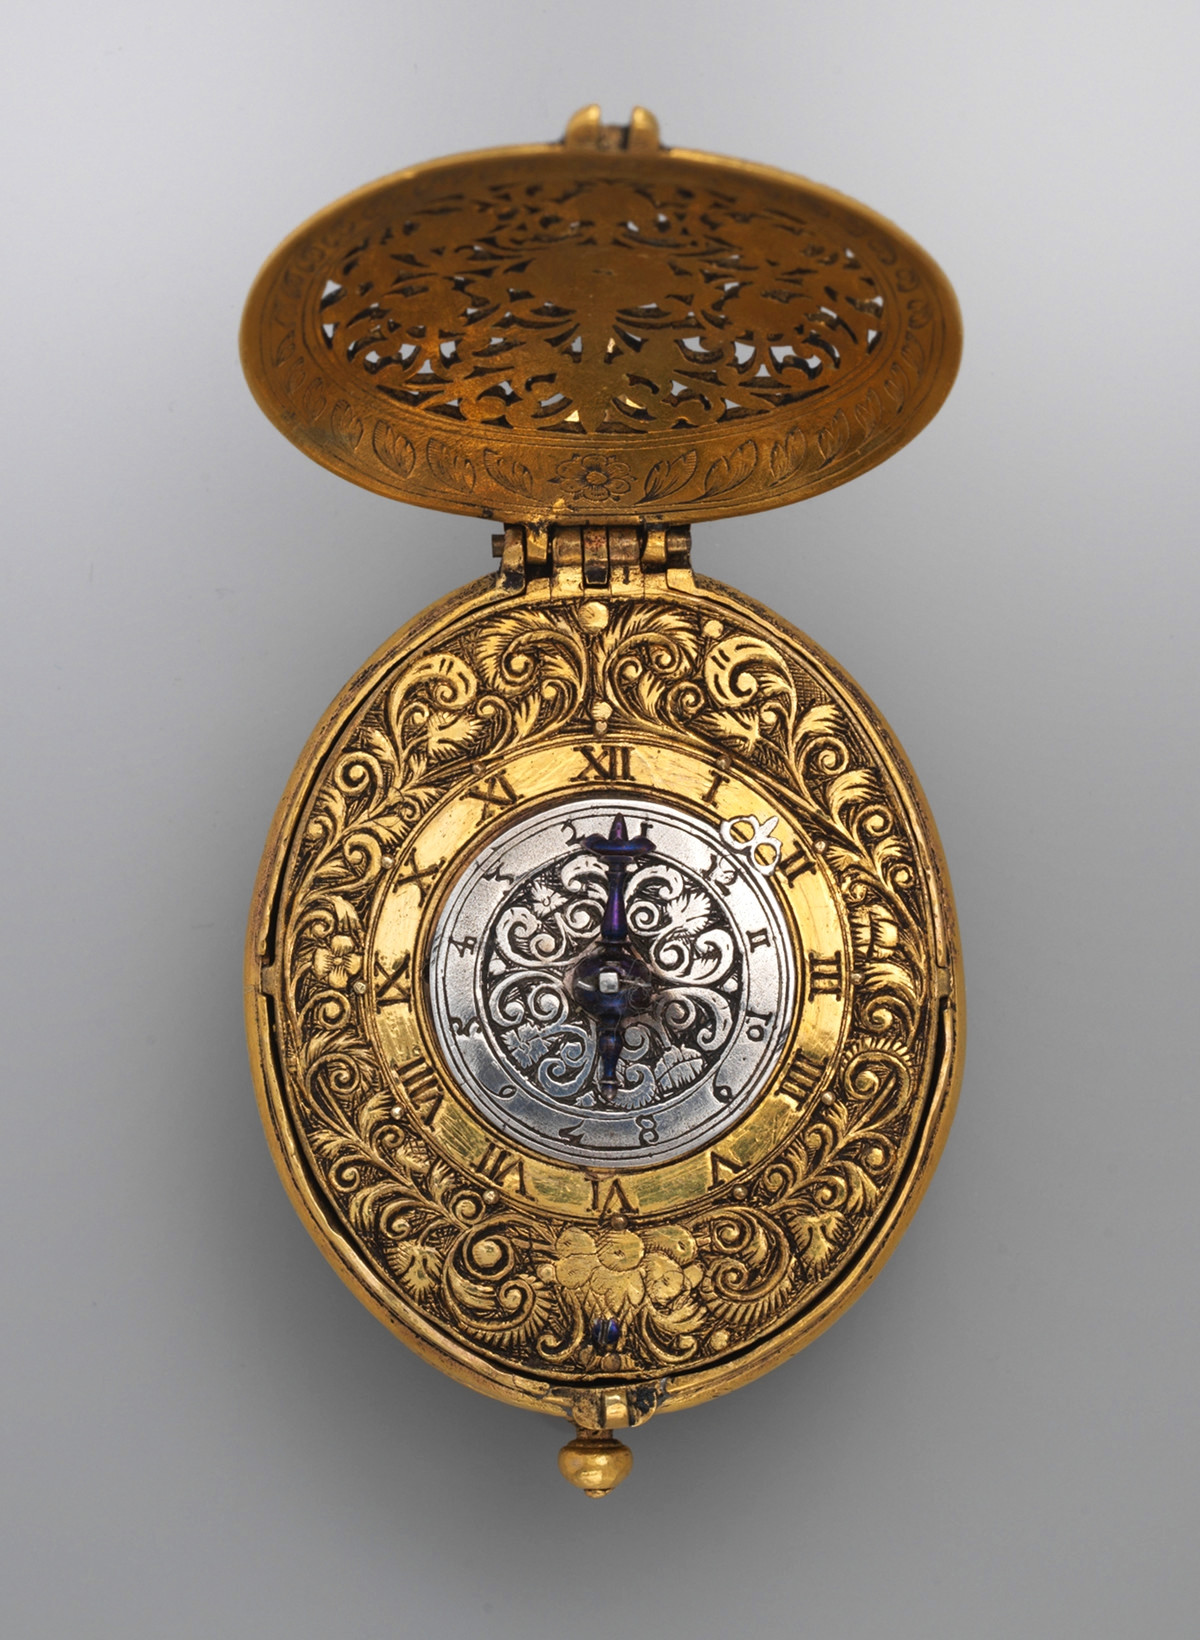 1640. Watch. British, London. Silver gilt. metmuseum